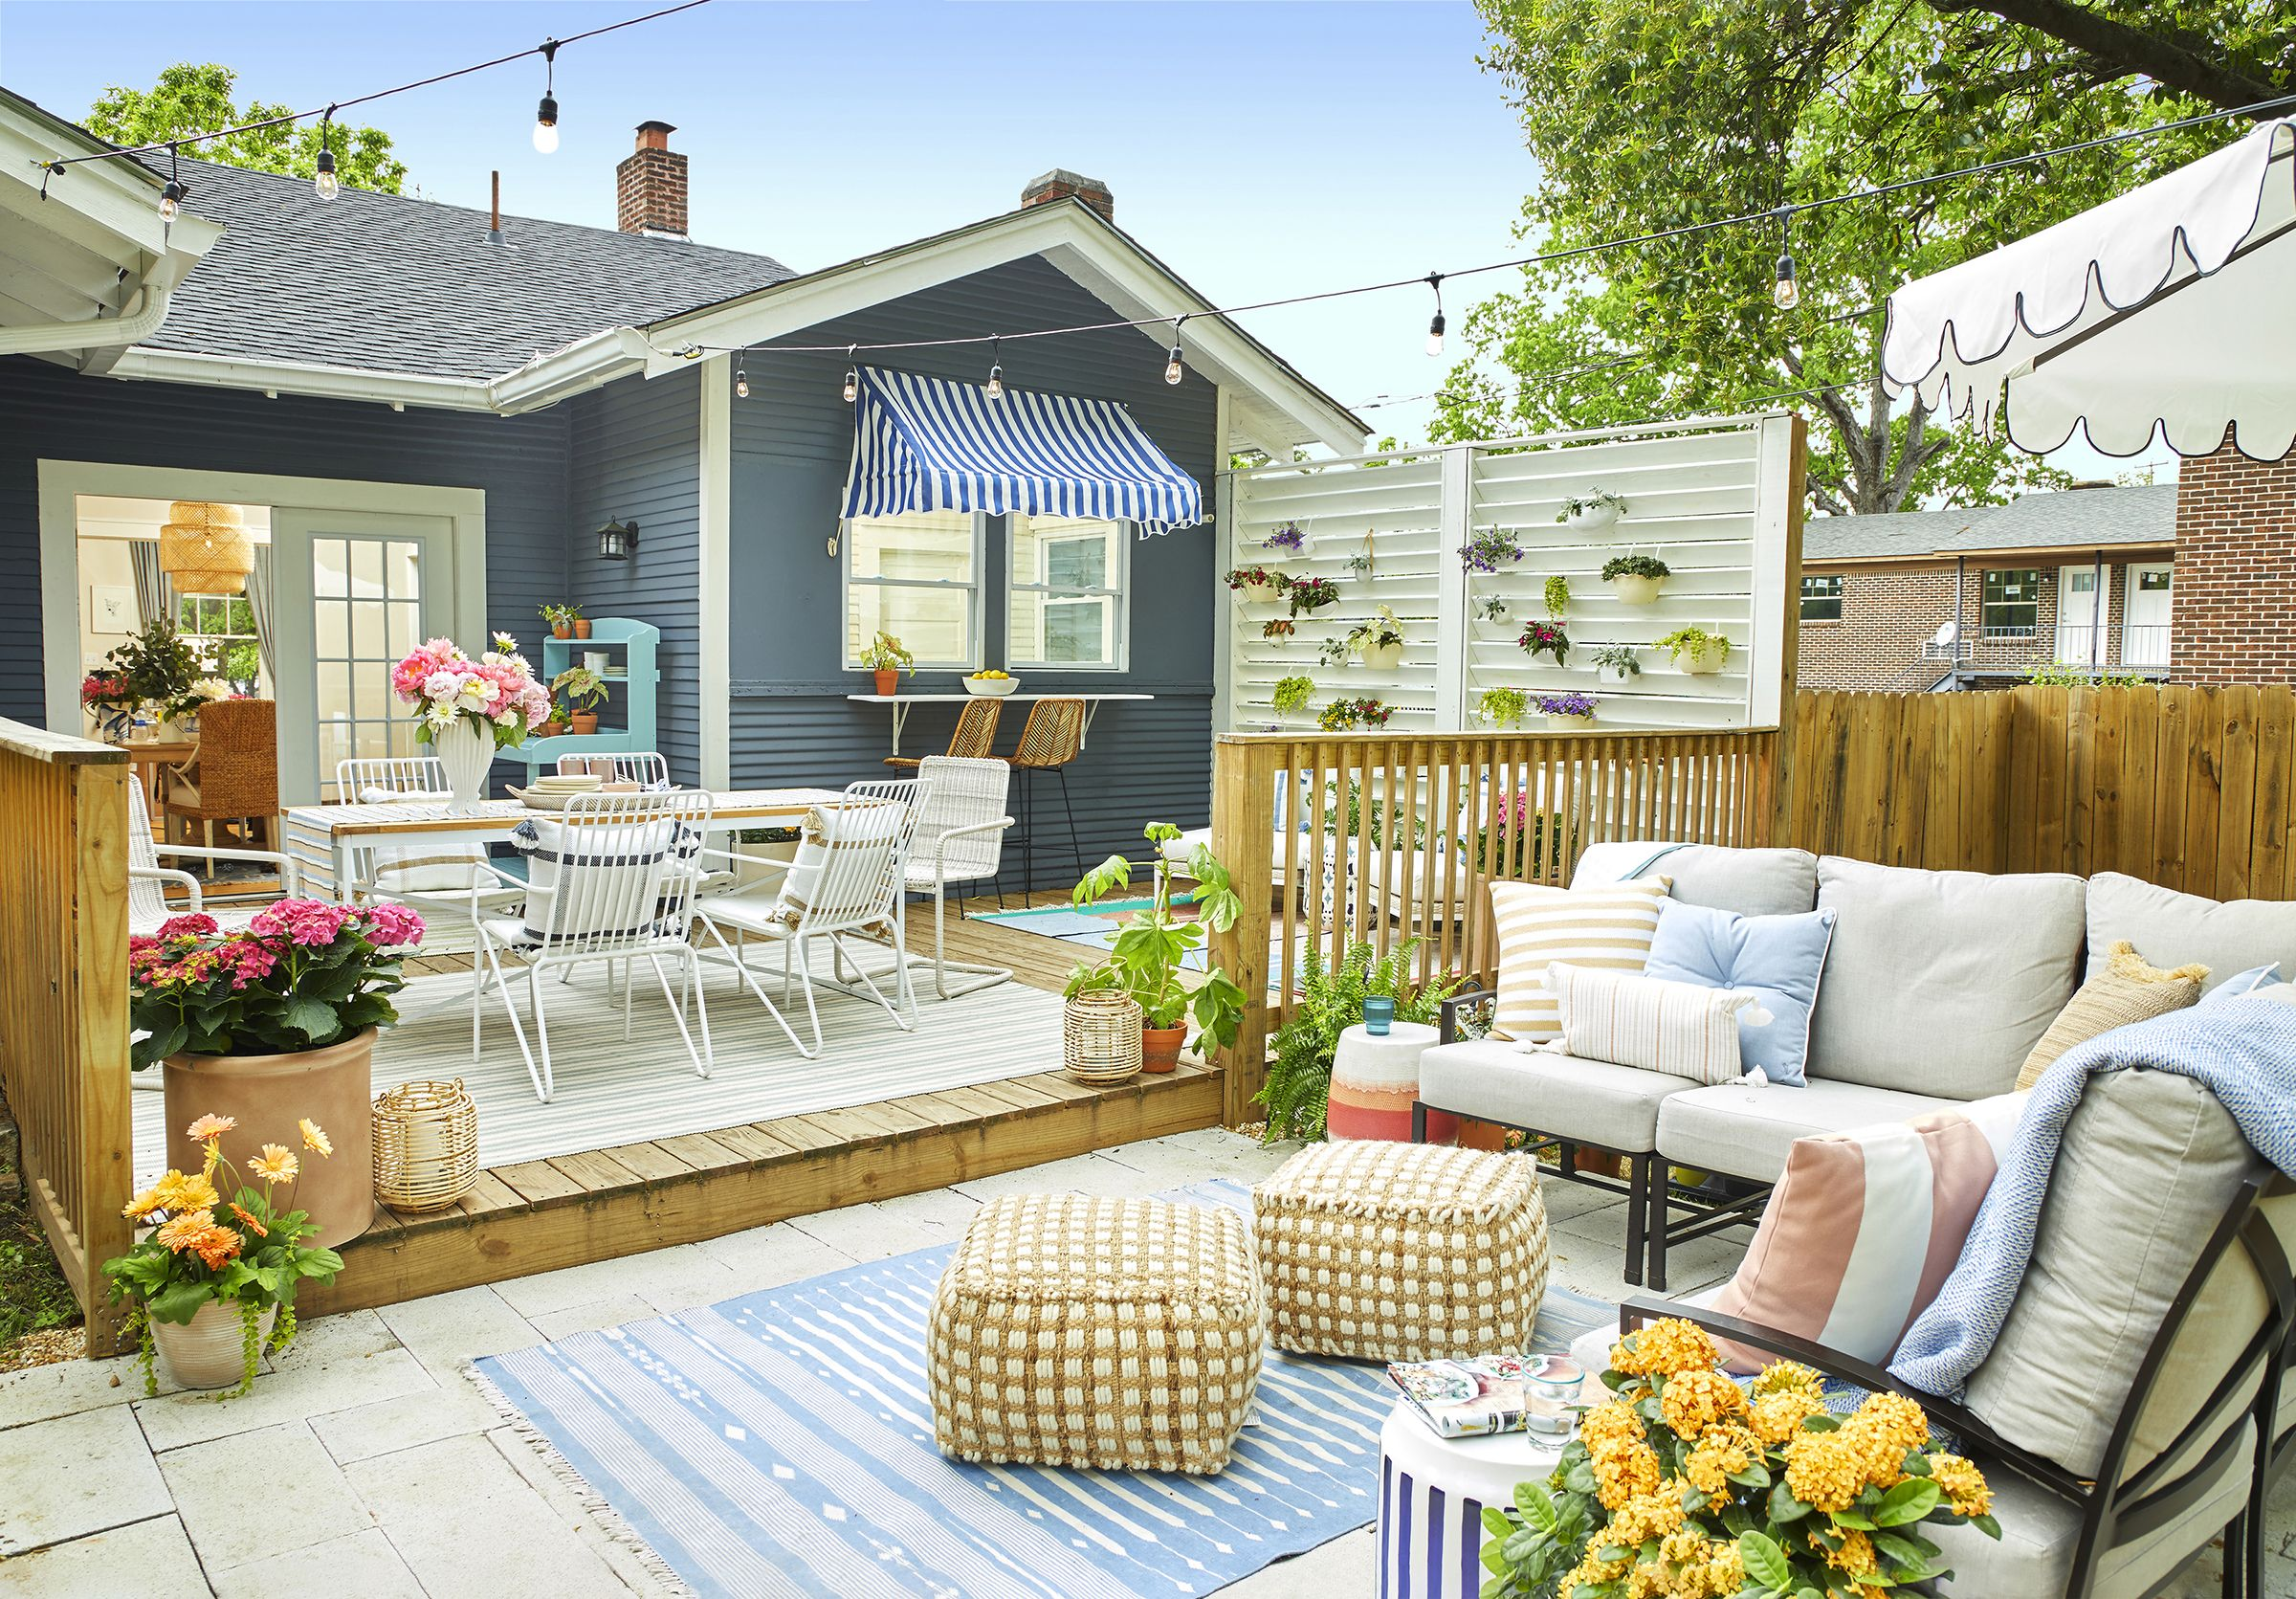 35 Best Patio and Porch Design Ideas , Decorating Your